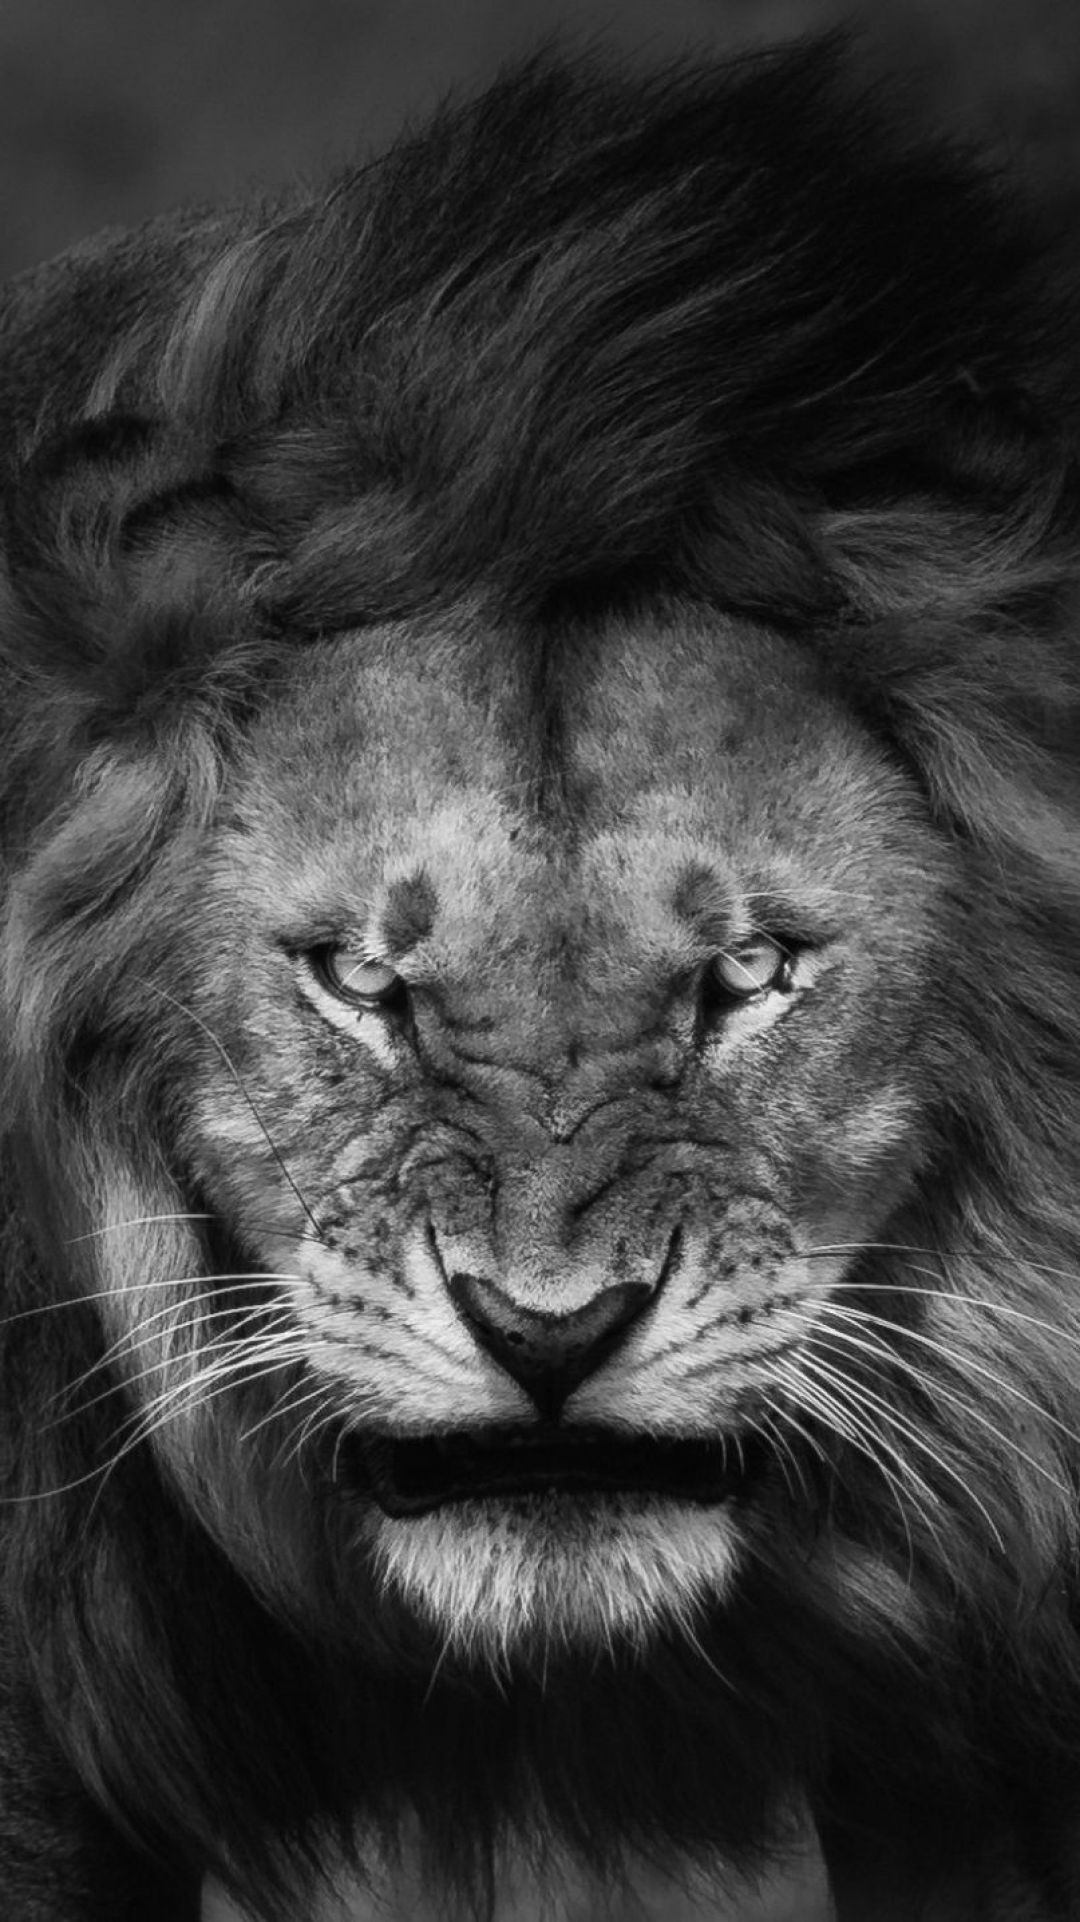 200 Lion Iphone Android Iphone Desktop Hd Backgrounds Wallpapers 1080p 4k 1080x1922 2020